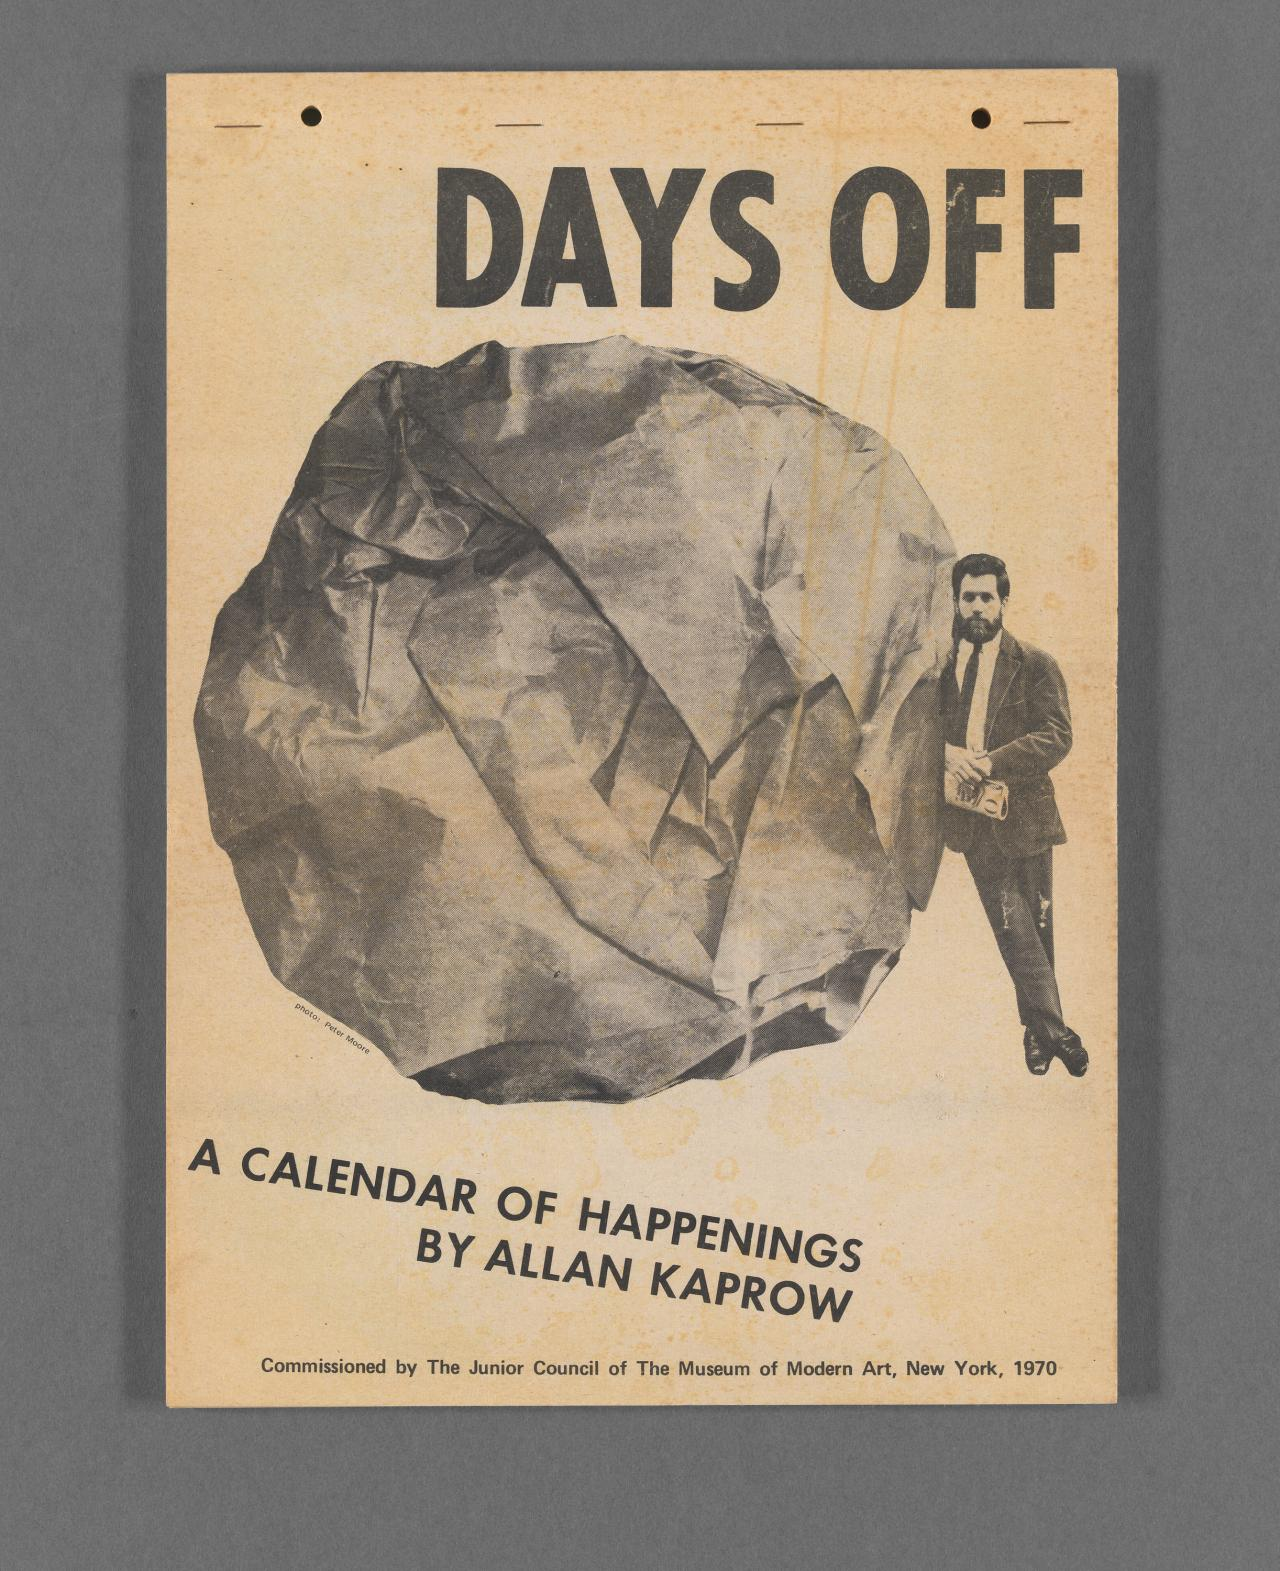 Days off: A calendar of happenings